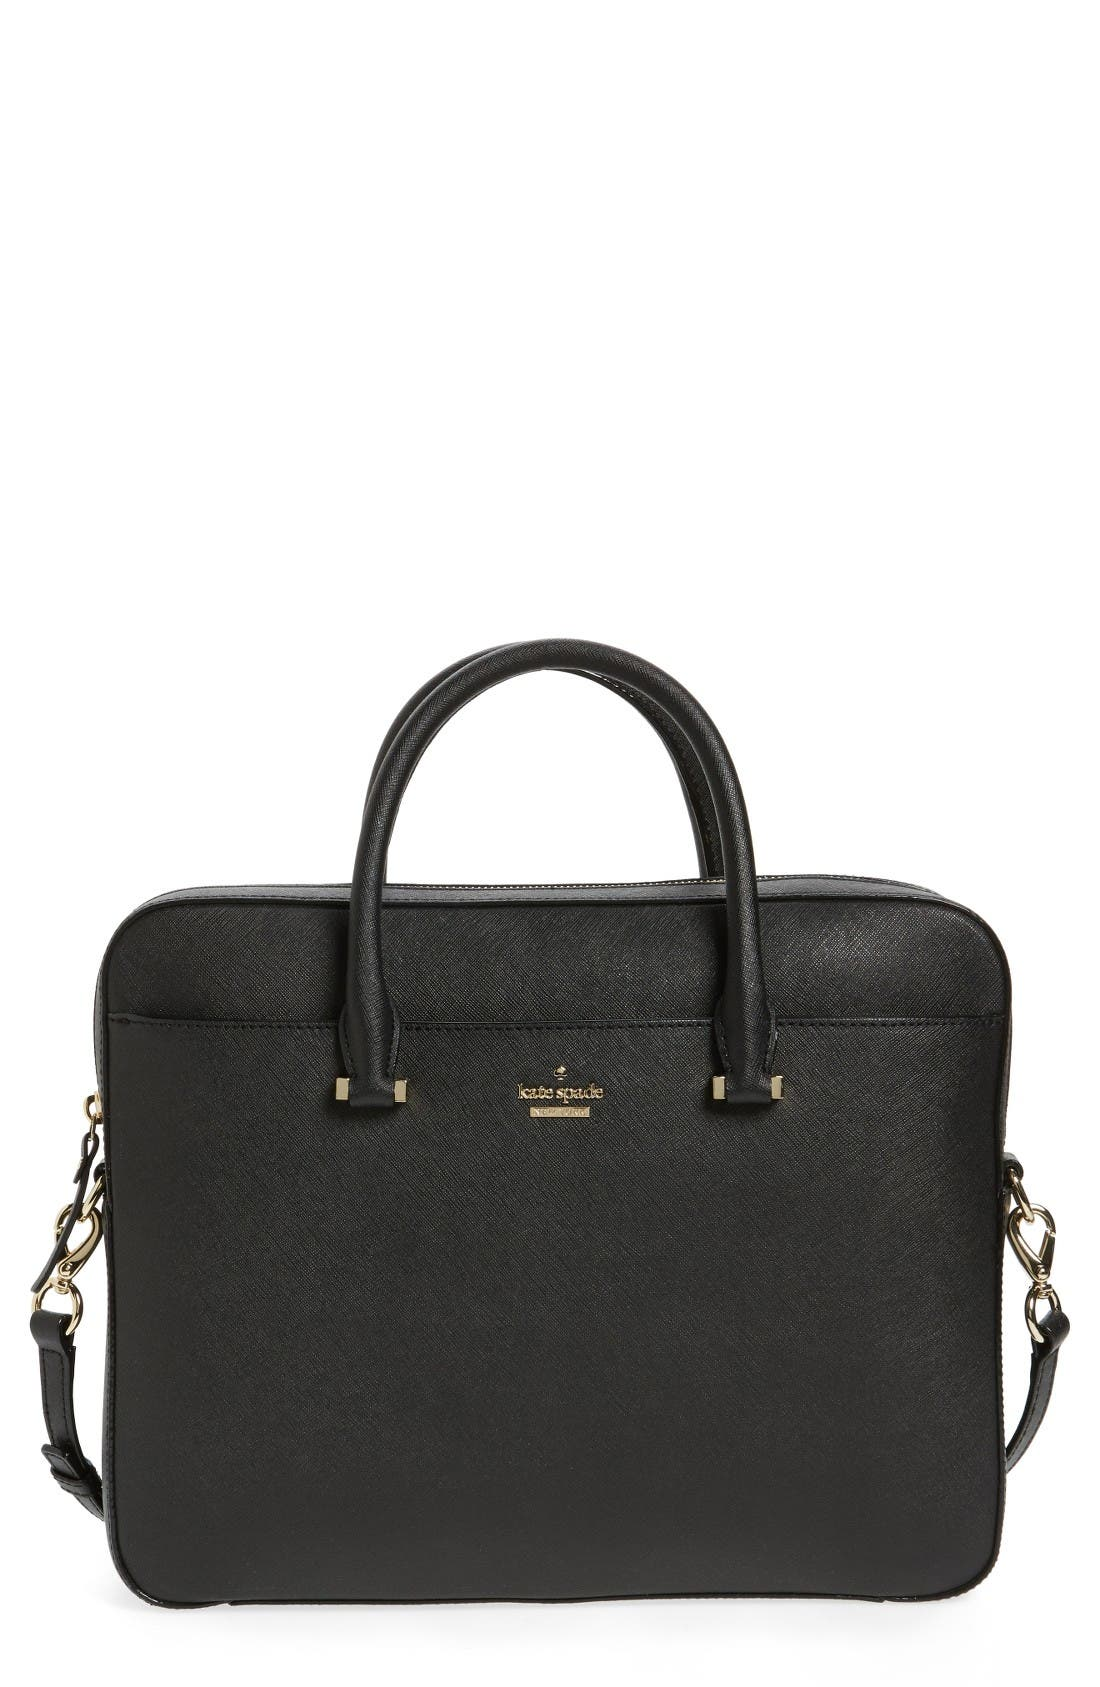 Alternate Image 1 Selected - kate spade new york saffiano leather 13 inch laptop bag